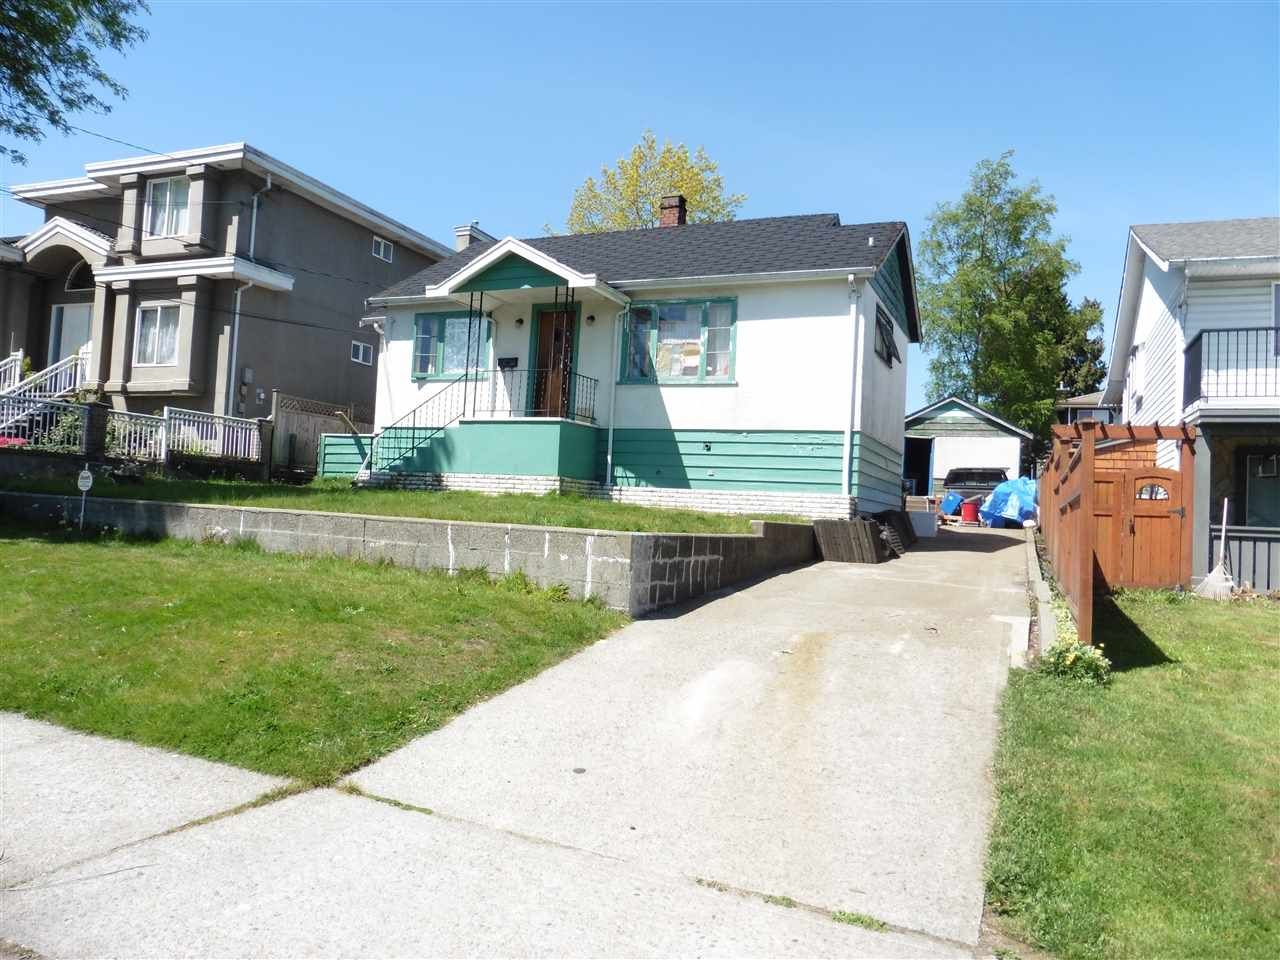 Main Photo: 7847 15TH Avenue in Burnaby: East Burnaby House for sale (Burnaby East)  : MLS®# R2367502